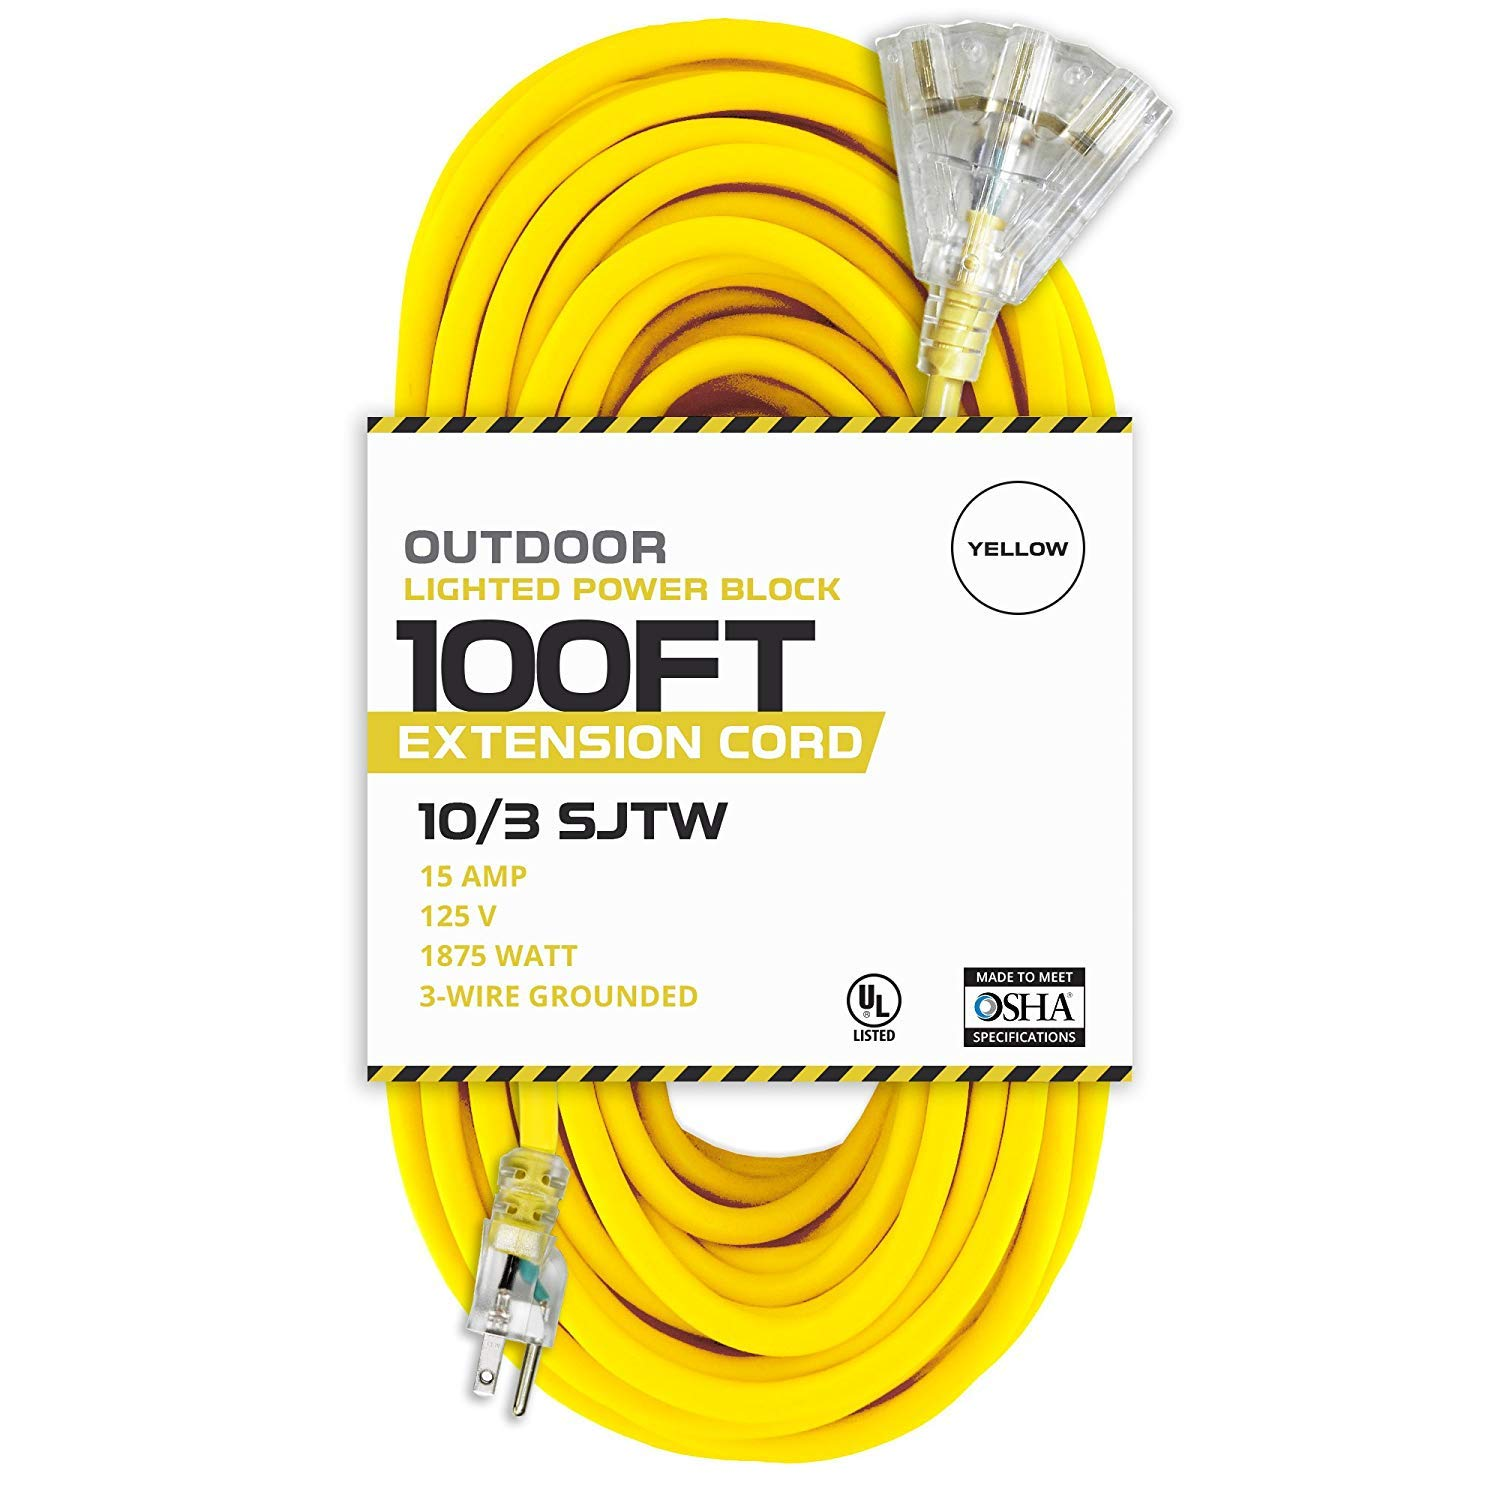 100 Foot Lighted Outdoor Extension Cord with 3 Electrical Power Outlets - 10/3 SJTW Yellow 10 Gauge Extension Cable with 3 Prong Grounded Plug for Safety